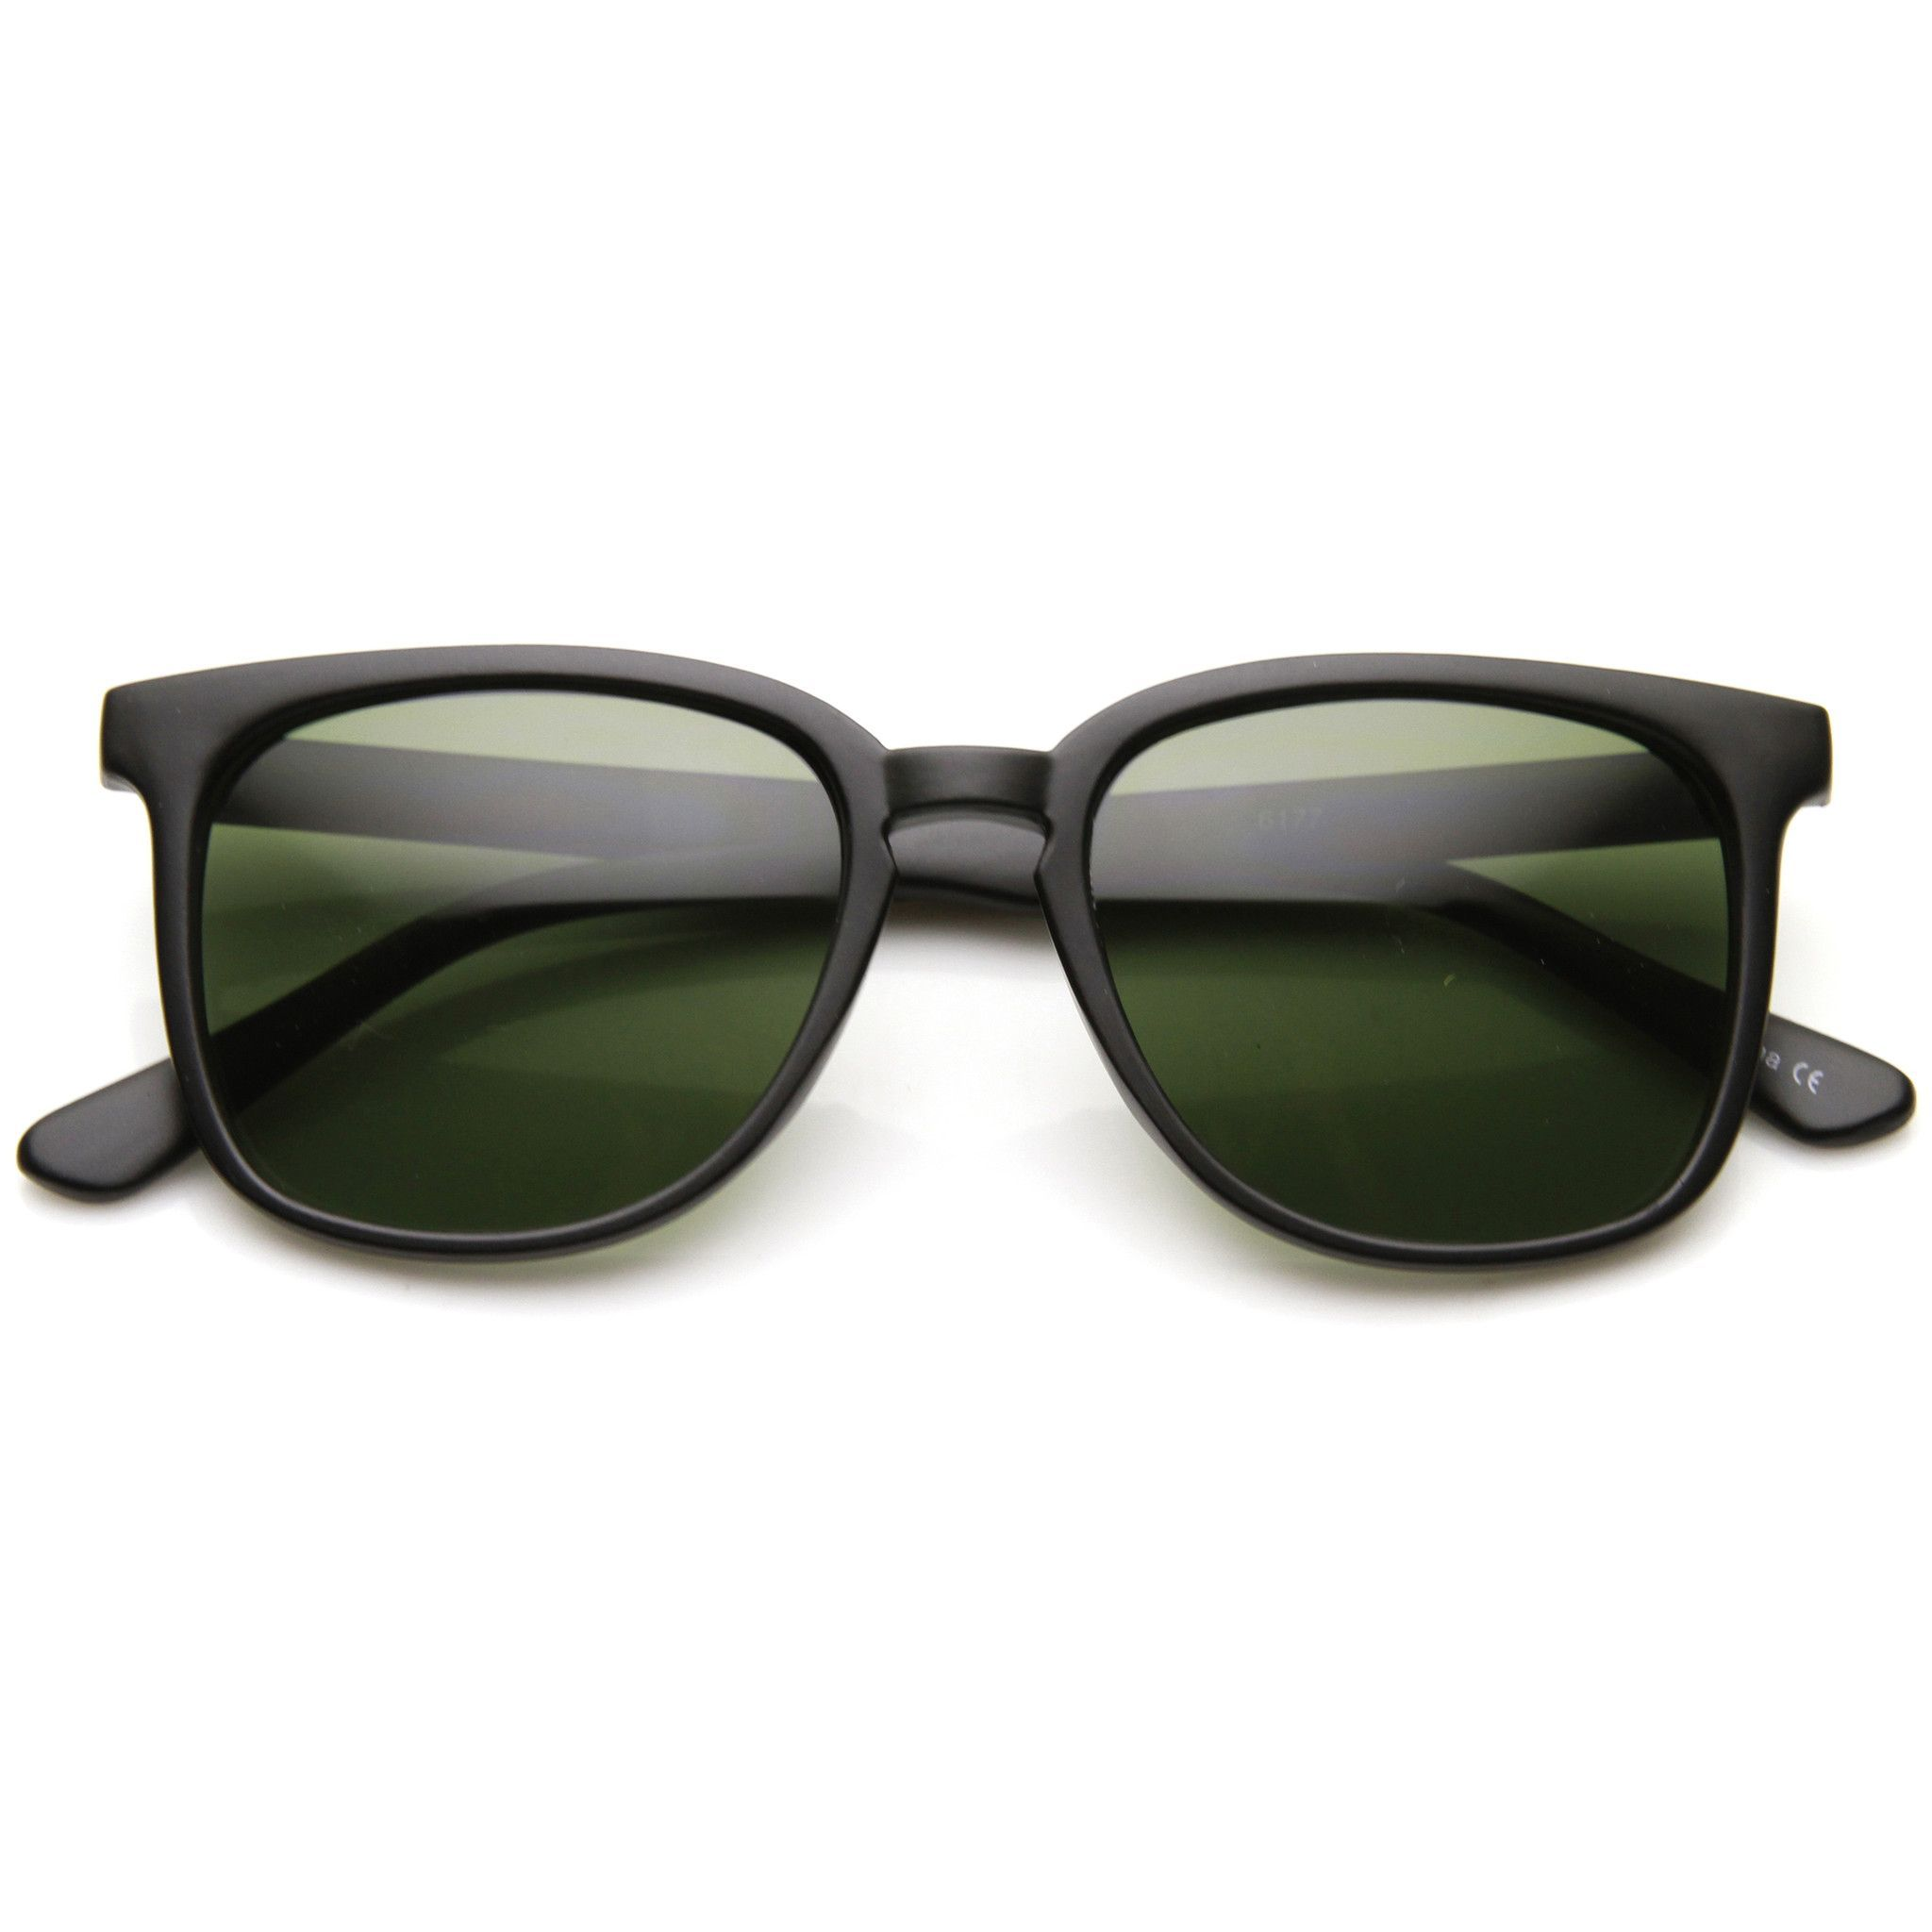 Indie Hipster Retro Dapper Horned Rim Sunglasses 9497